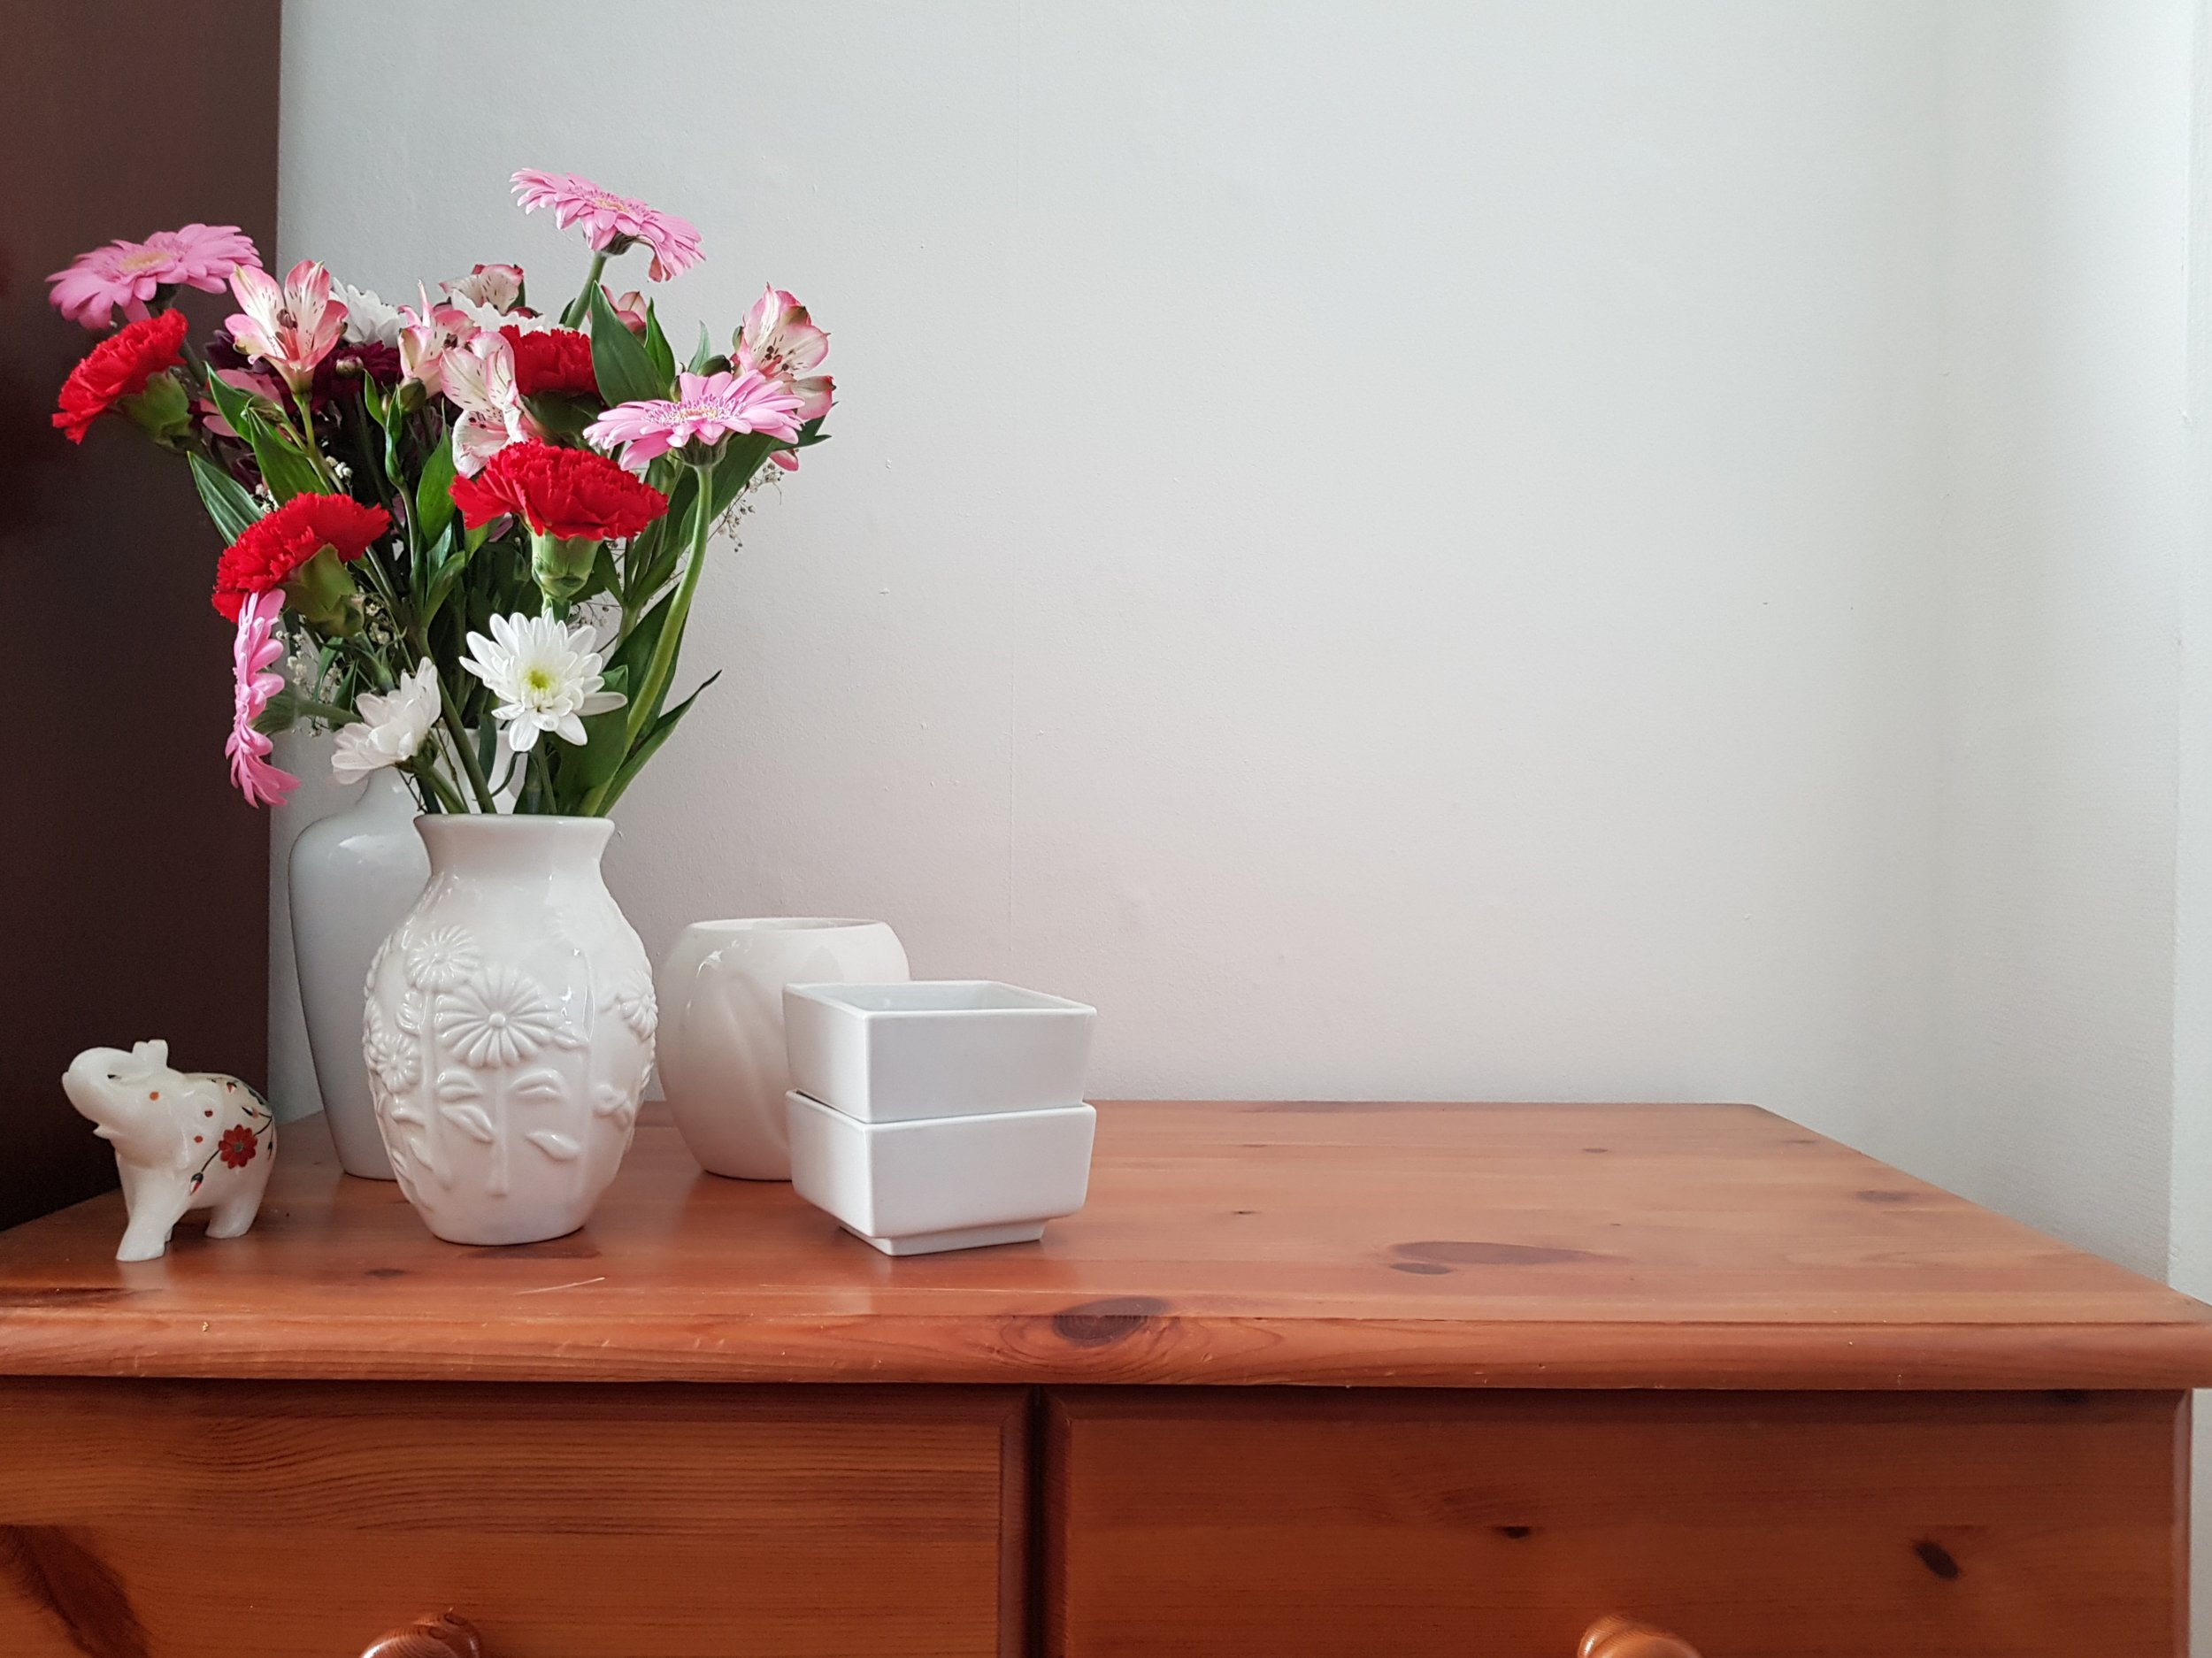 Adding a splash of colour to your home with flowers without needing to paint